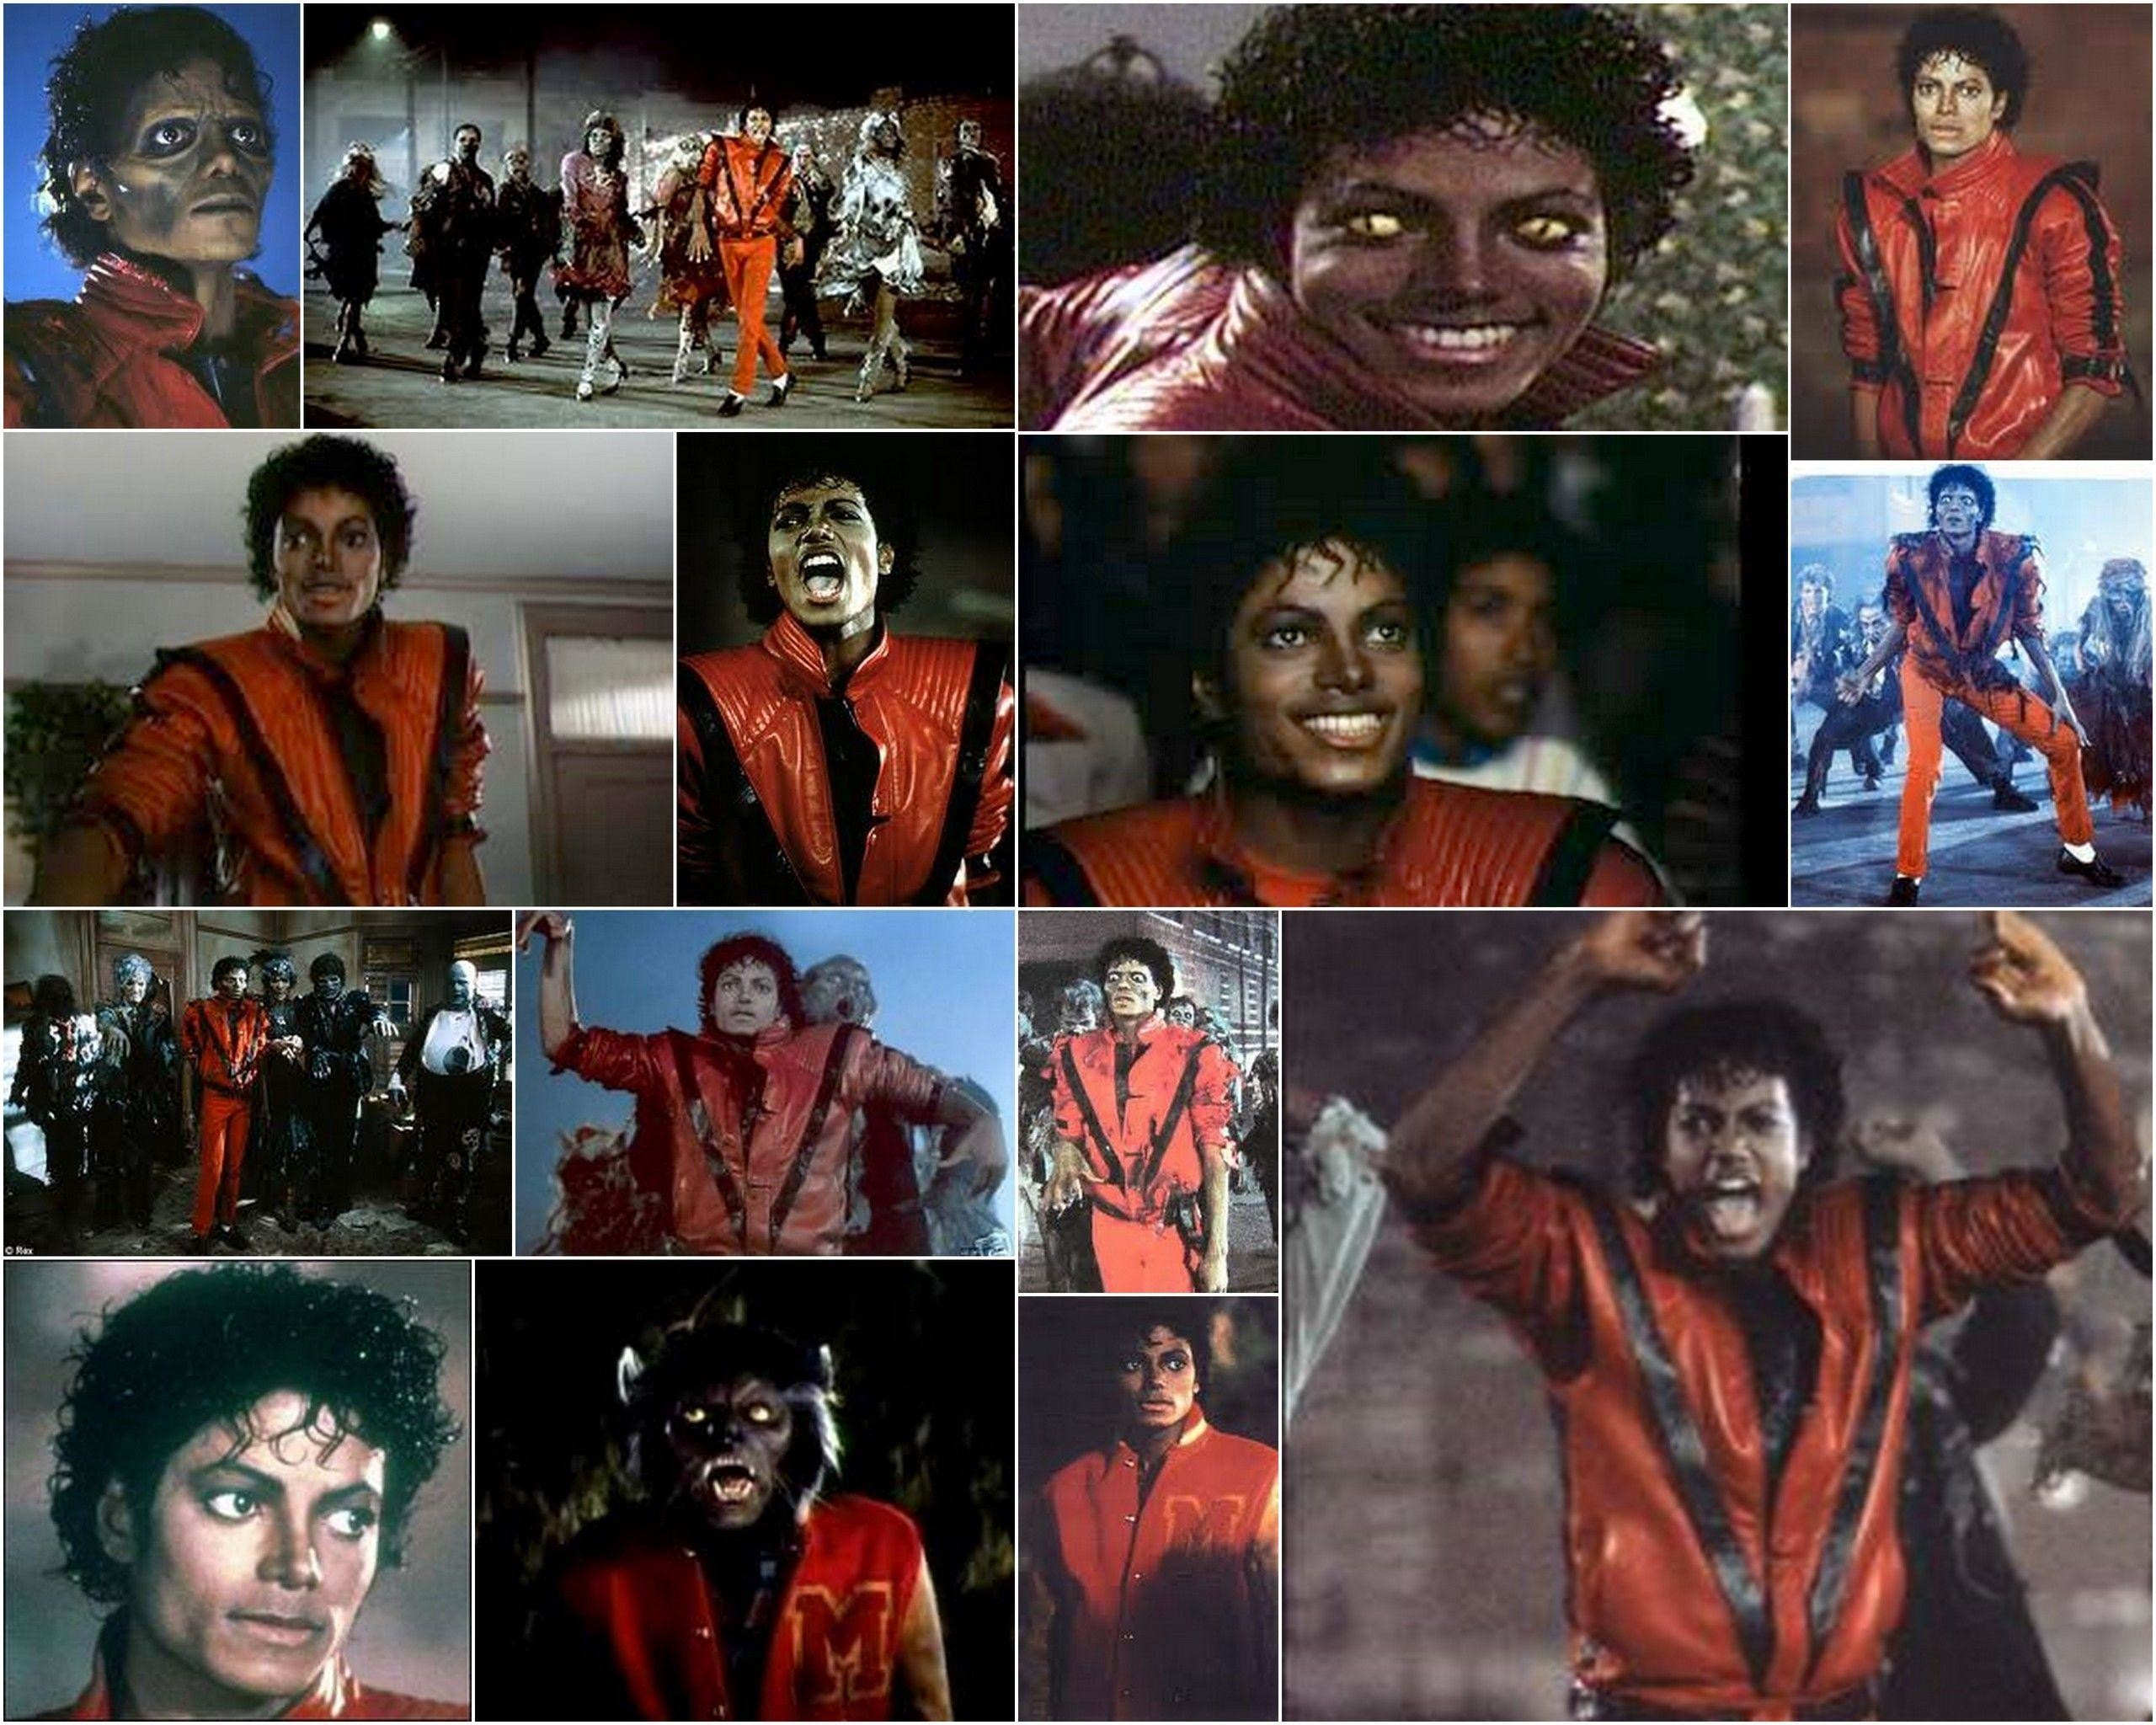 2560x2048 Thriller - Michael Jackson Photo (25438739) - Fanpop - Page 10